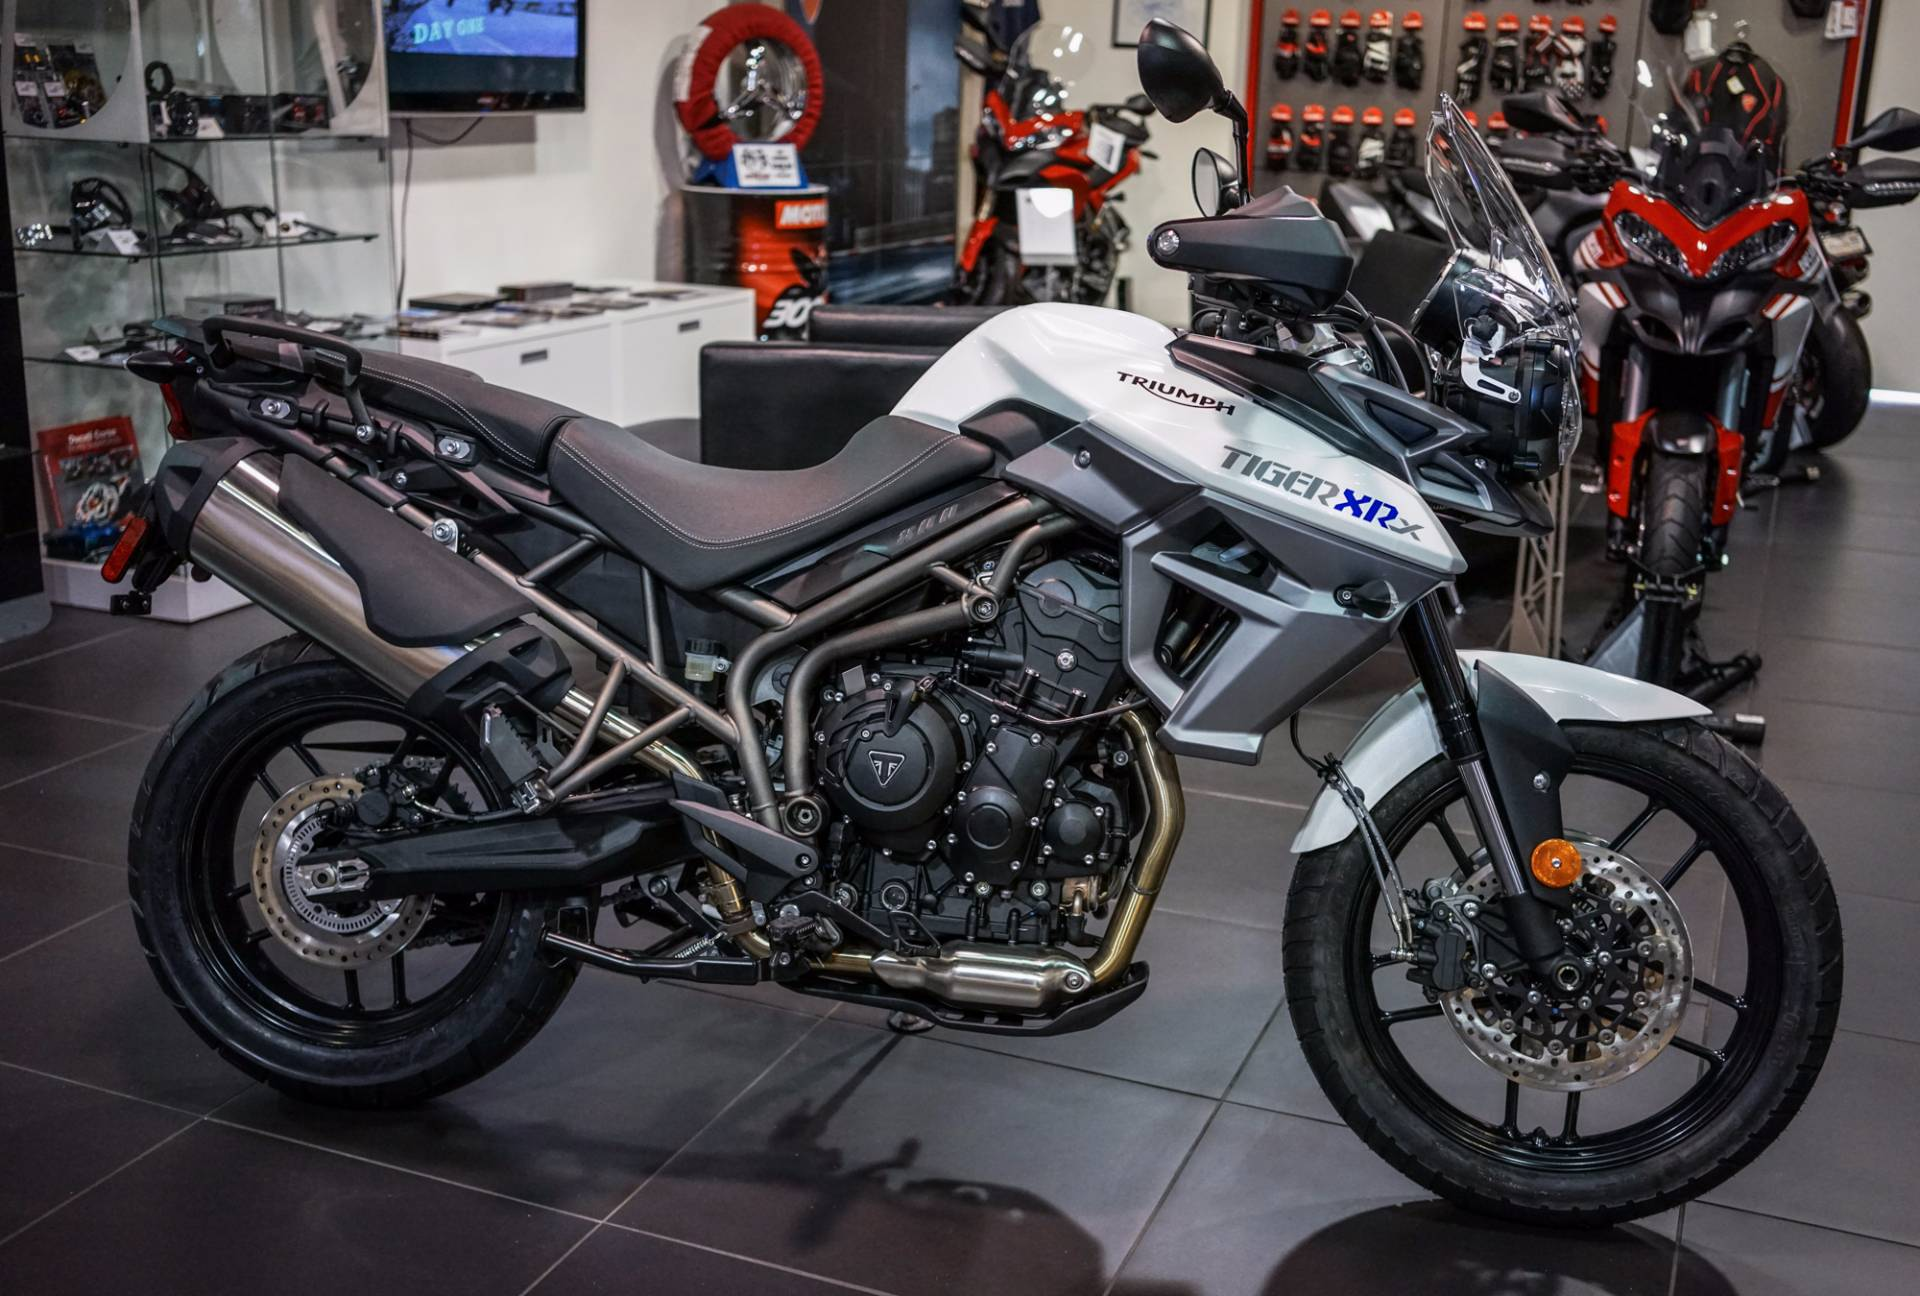 2017 Triumph Tiger 800 XRx Low in Brea, California